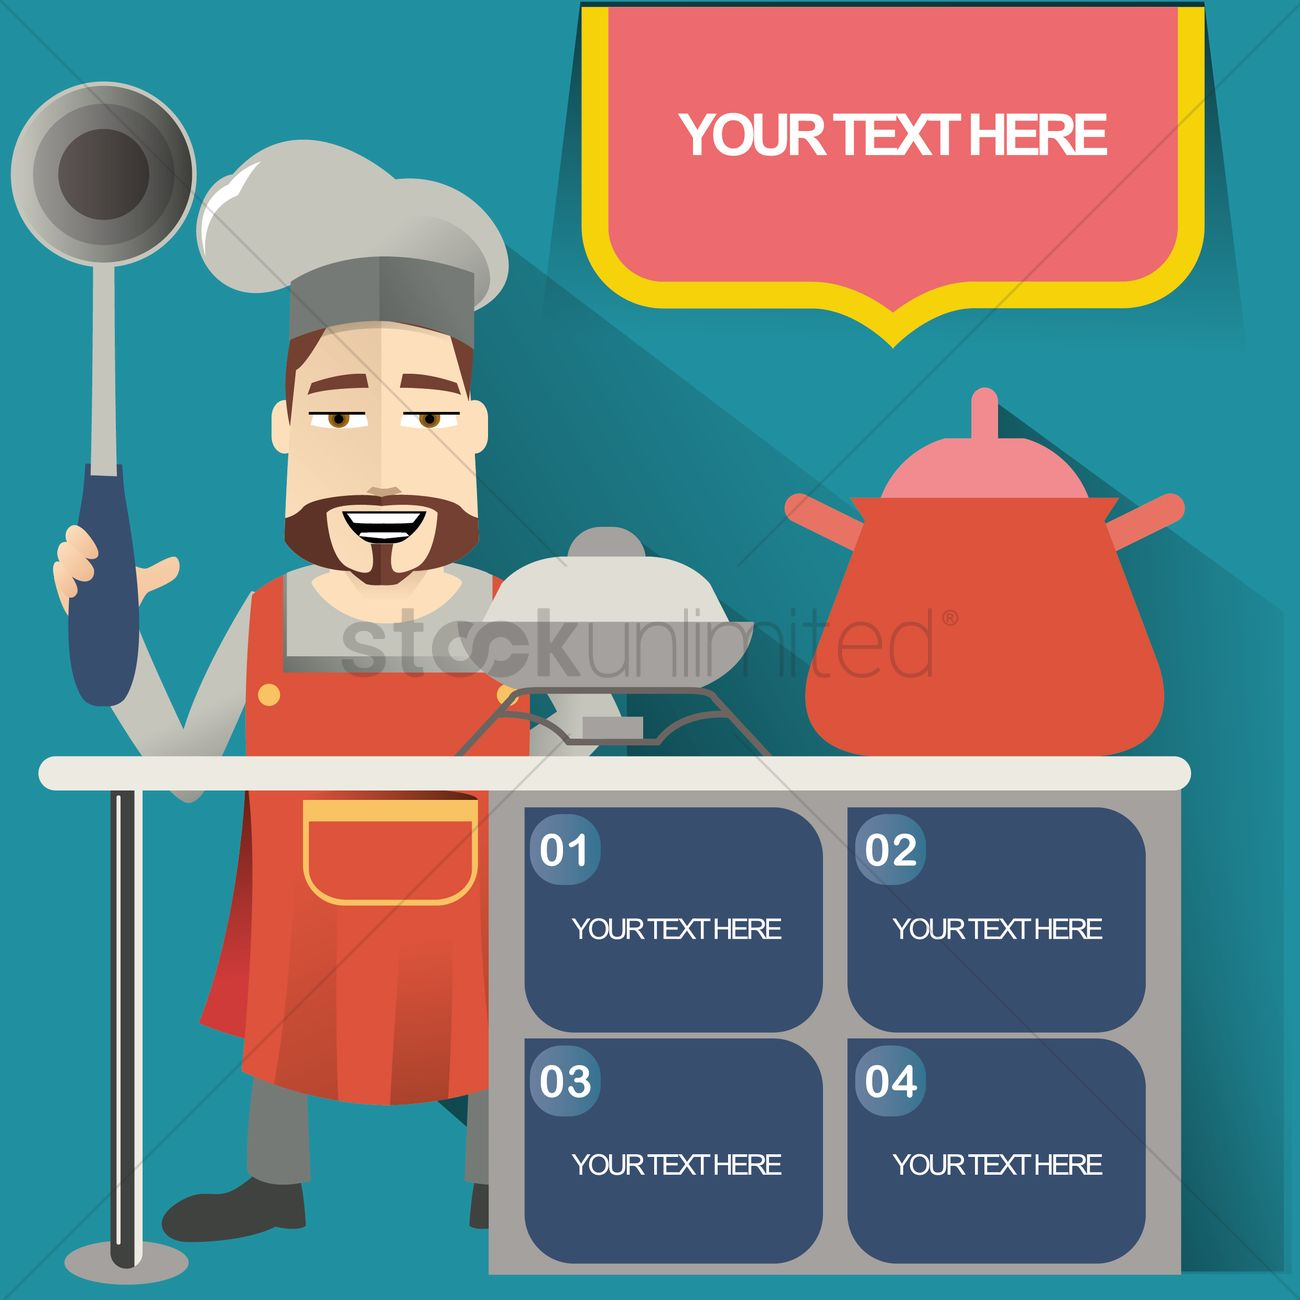 Chef cooking in kitchen Vector Image - 1512397 | StockUnlimited